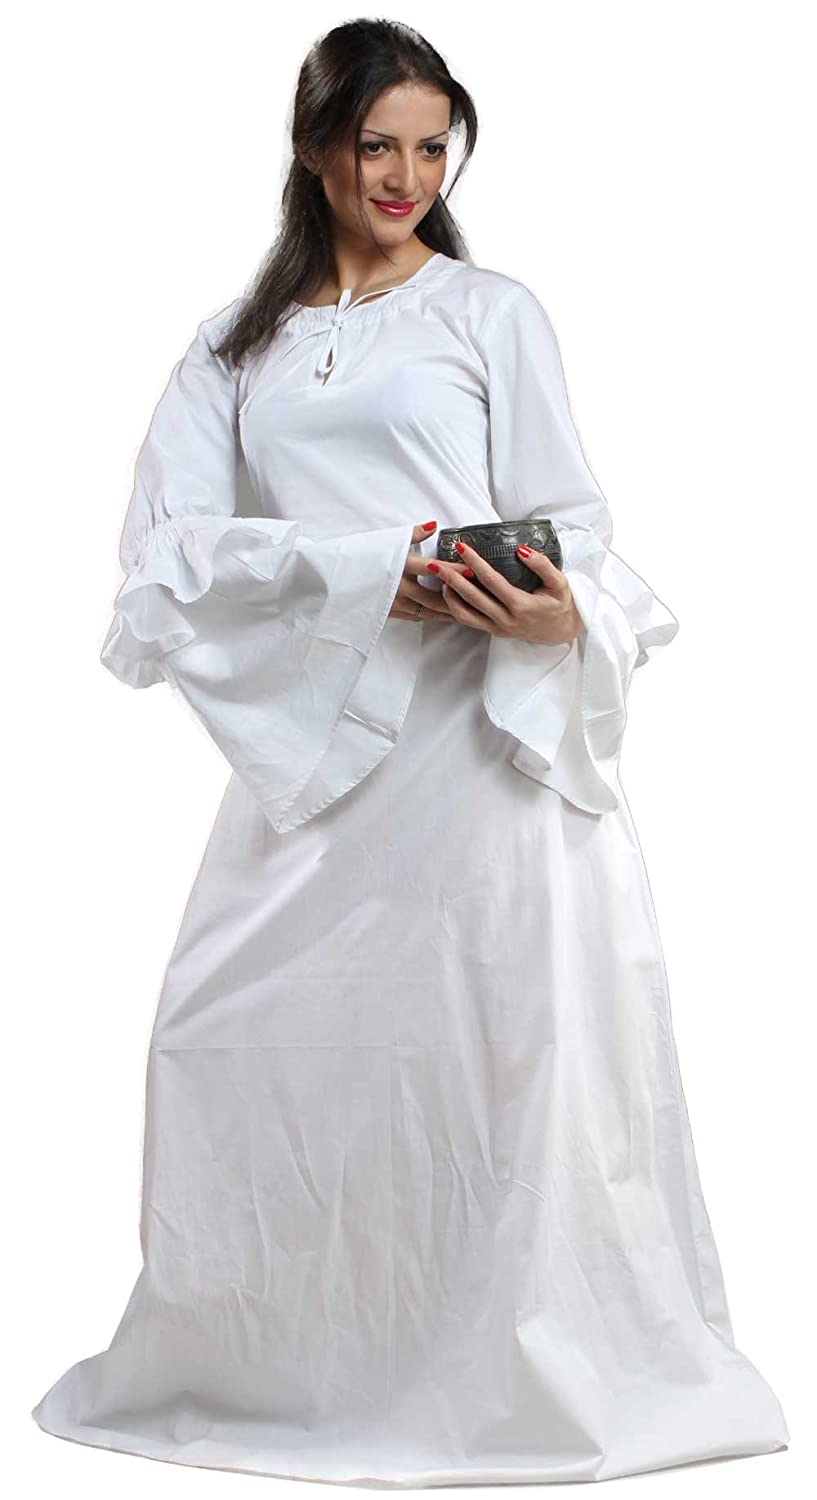 Women's Medieval Renaissance Anne of Cleves White Chemise - DeluxeAdultCostumes.com